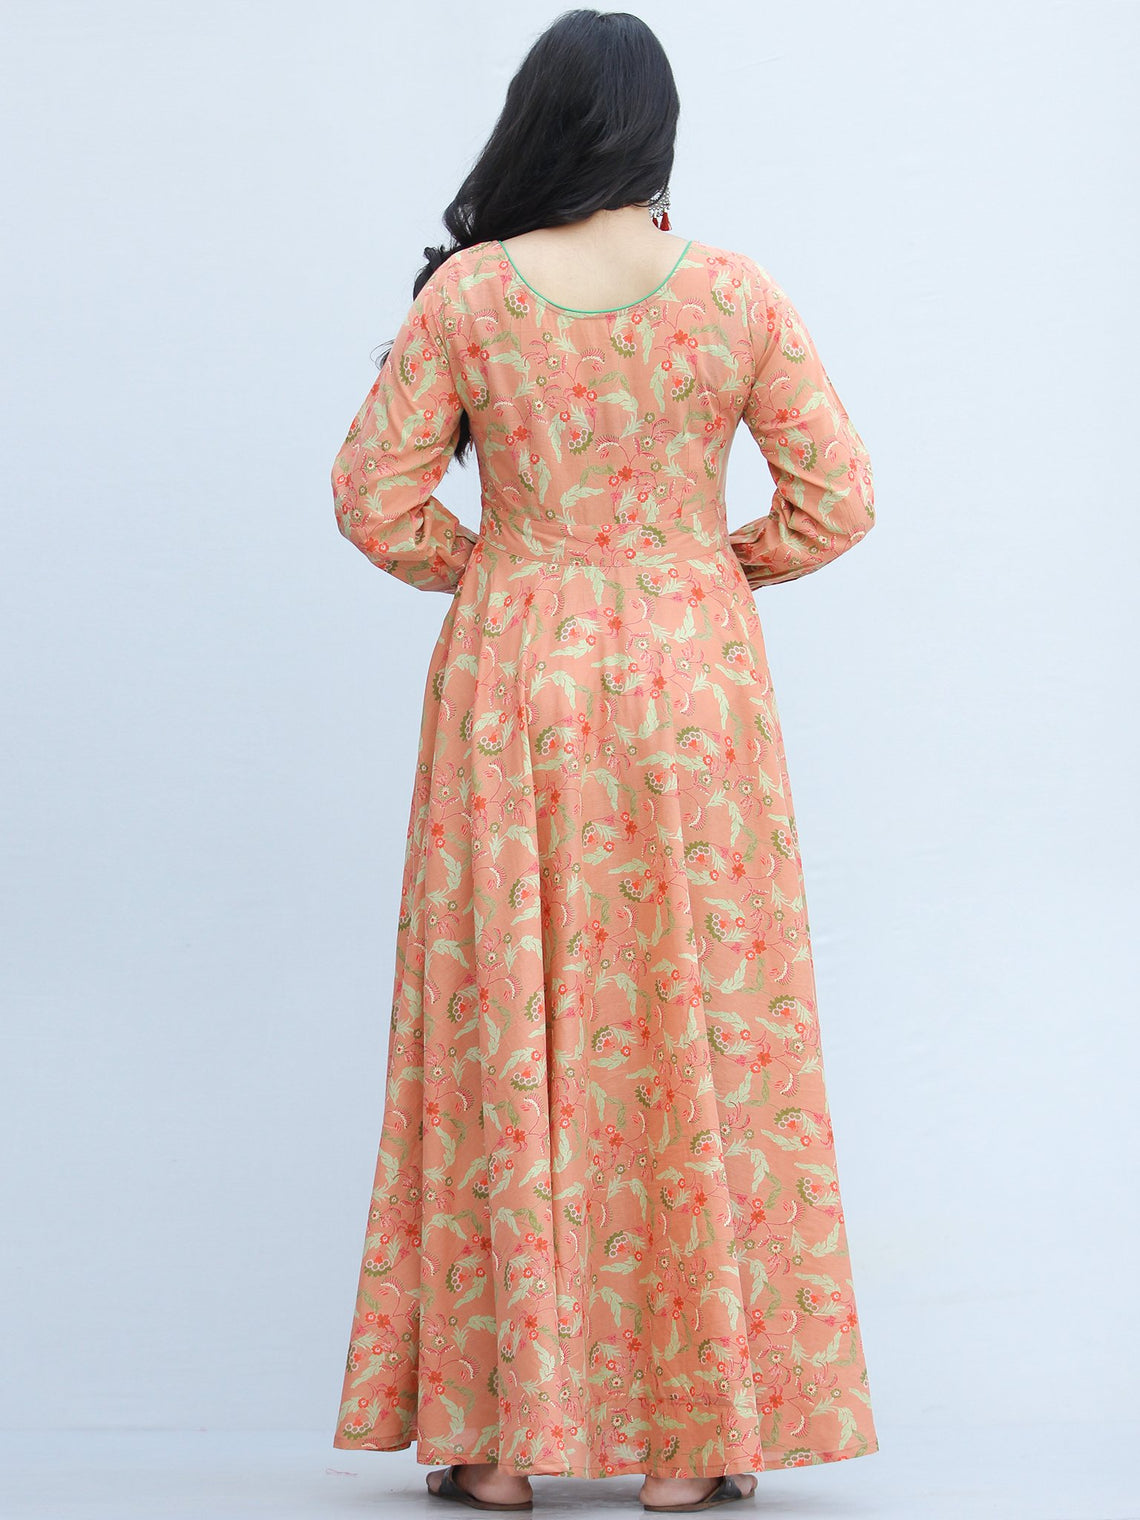 Gulzar Shanza- Urave Cut Flared Long Cotton Dress  - D459F2292